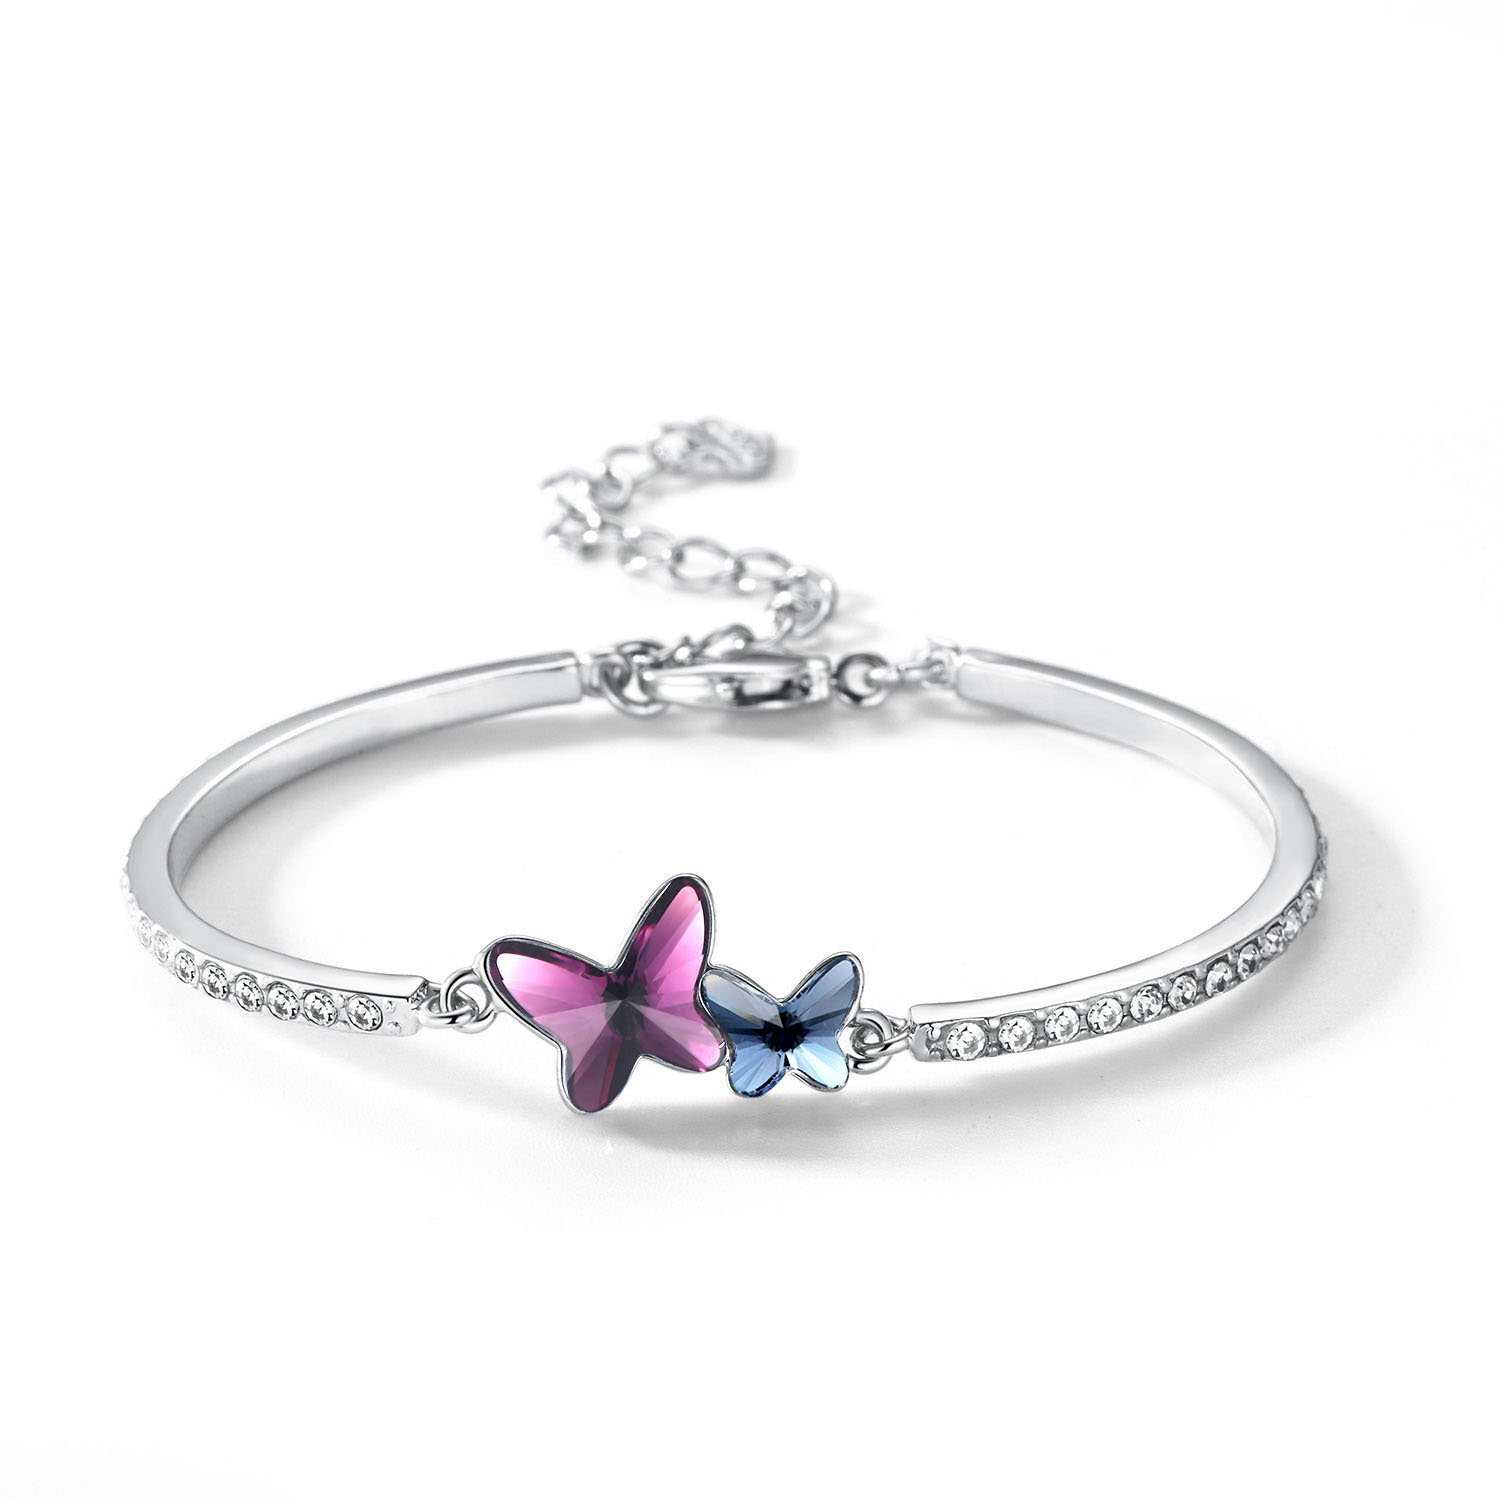 T400 Butterfly Bangle Bracelet, Jewelers Dream Chasers Bracelet Made with Swarovski Crystals (Purple, Eco Alloy)